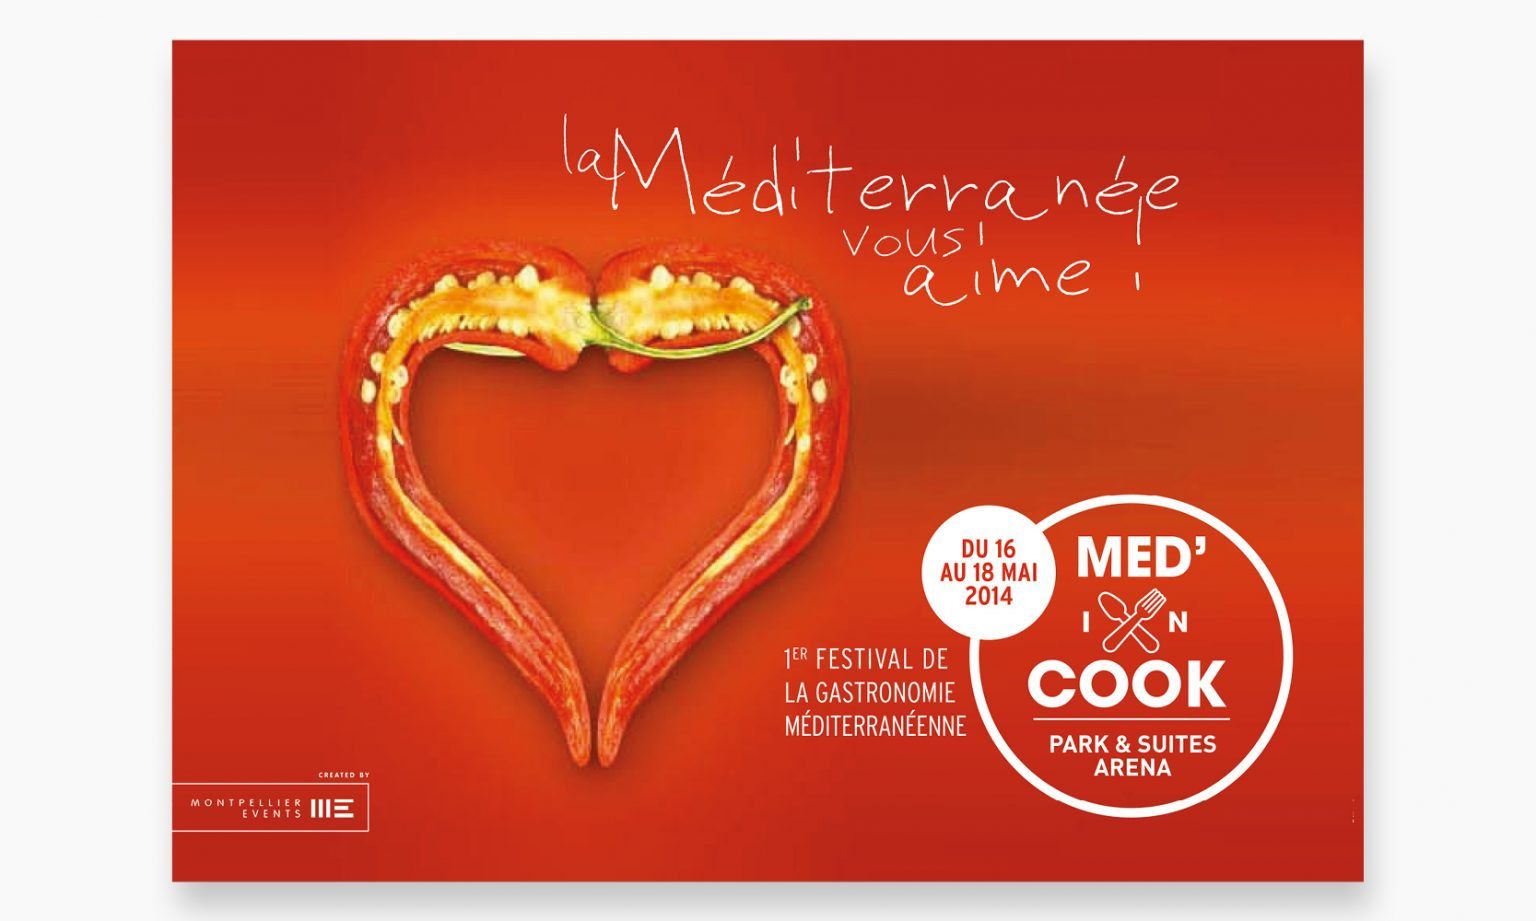 Montpellier-events_campagne-made-in-cook_3